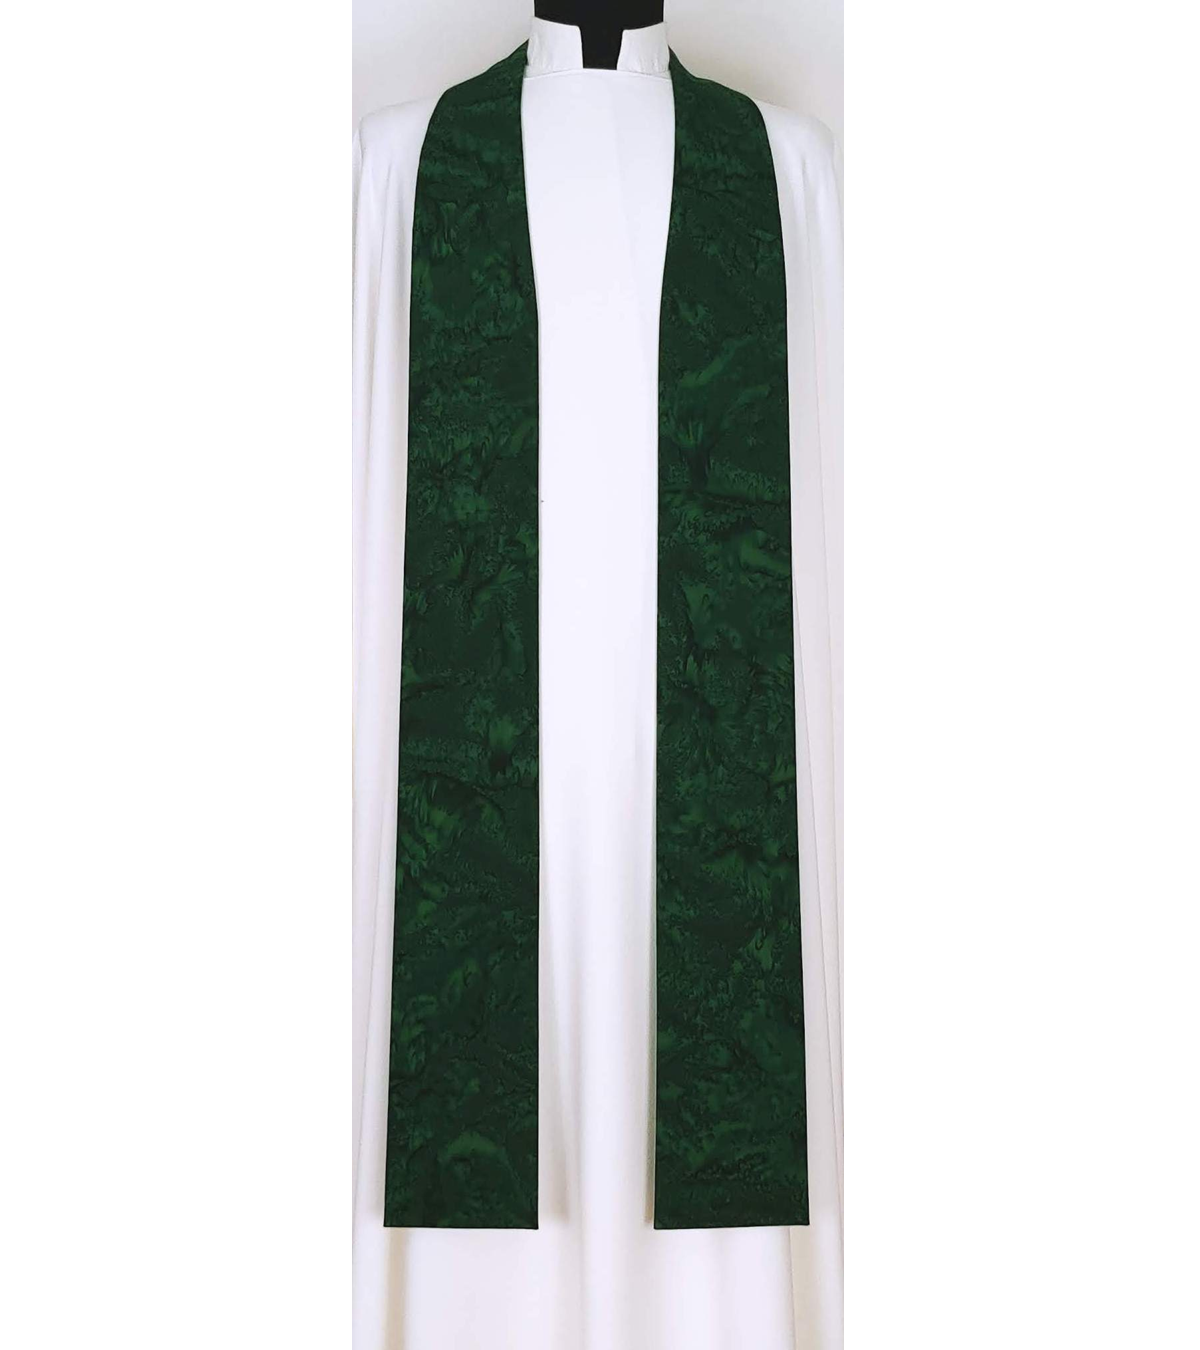 Basic Batiks: Hunter Green Clergy Stole with no Added Design